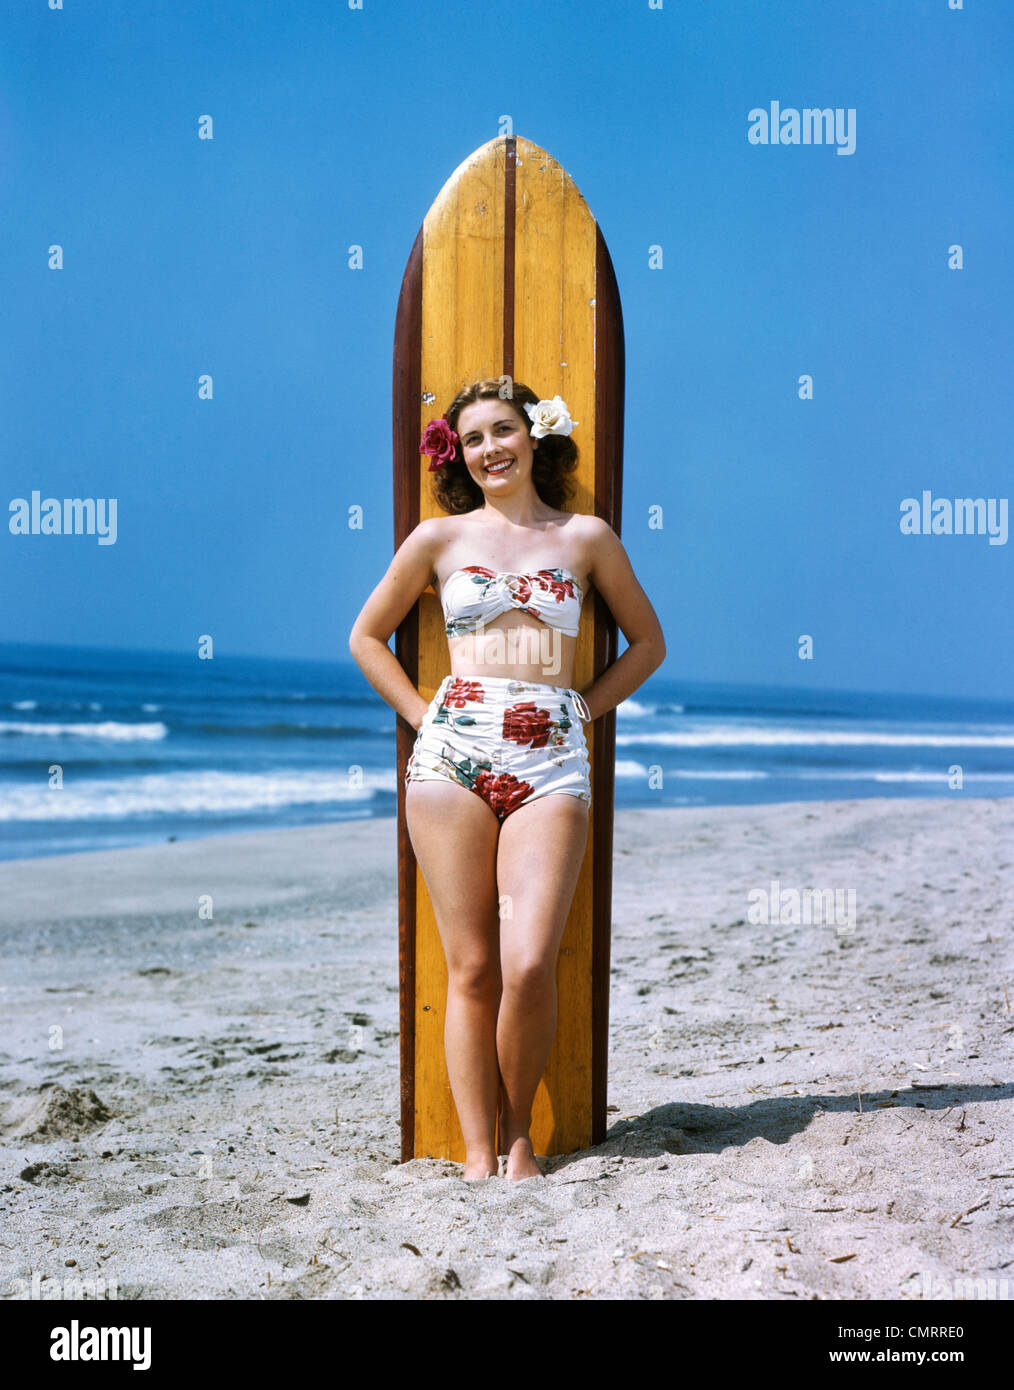 Old Fashioned Swimsuit Images